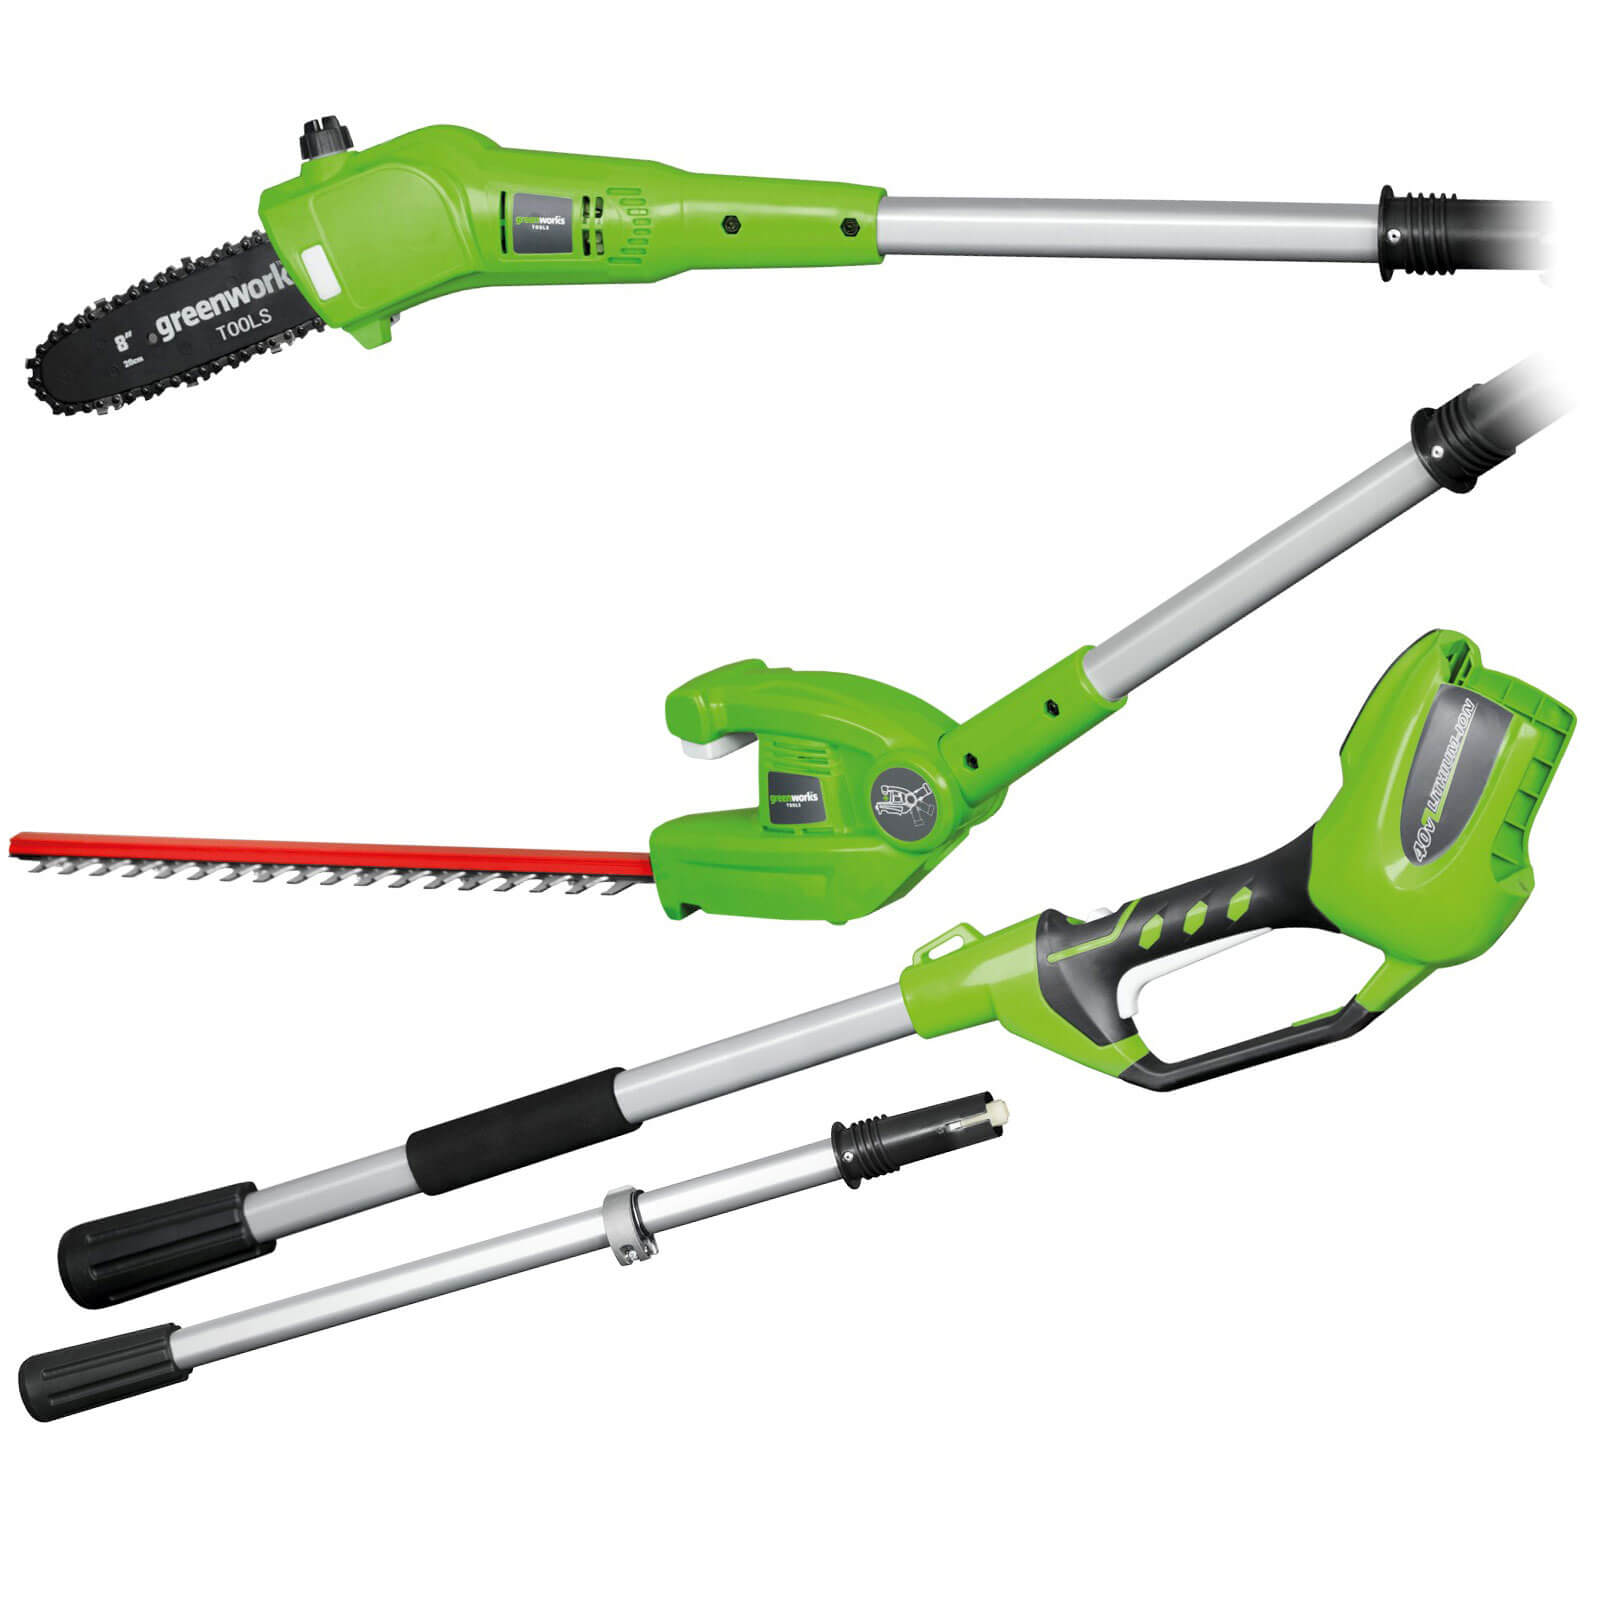 Greenworks G40PSH 40v Cordless Long Reach Hedge Trimmer and Tree Pruner No Batteries No Charger